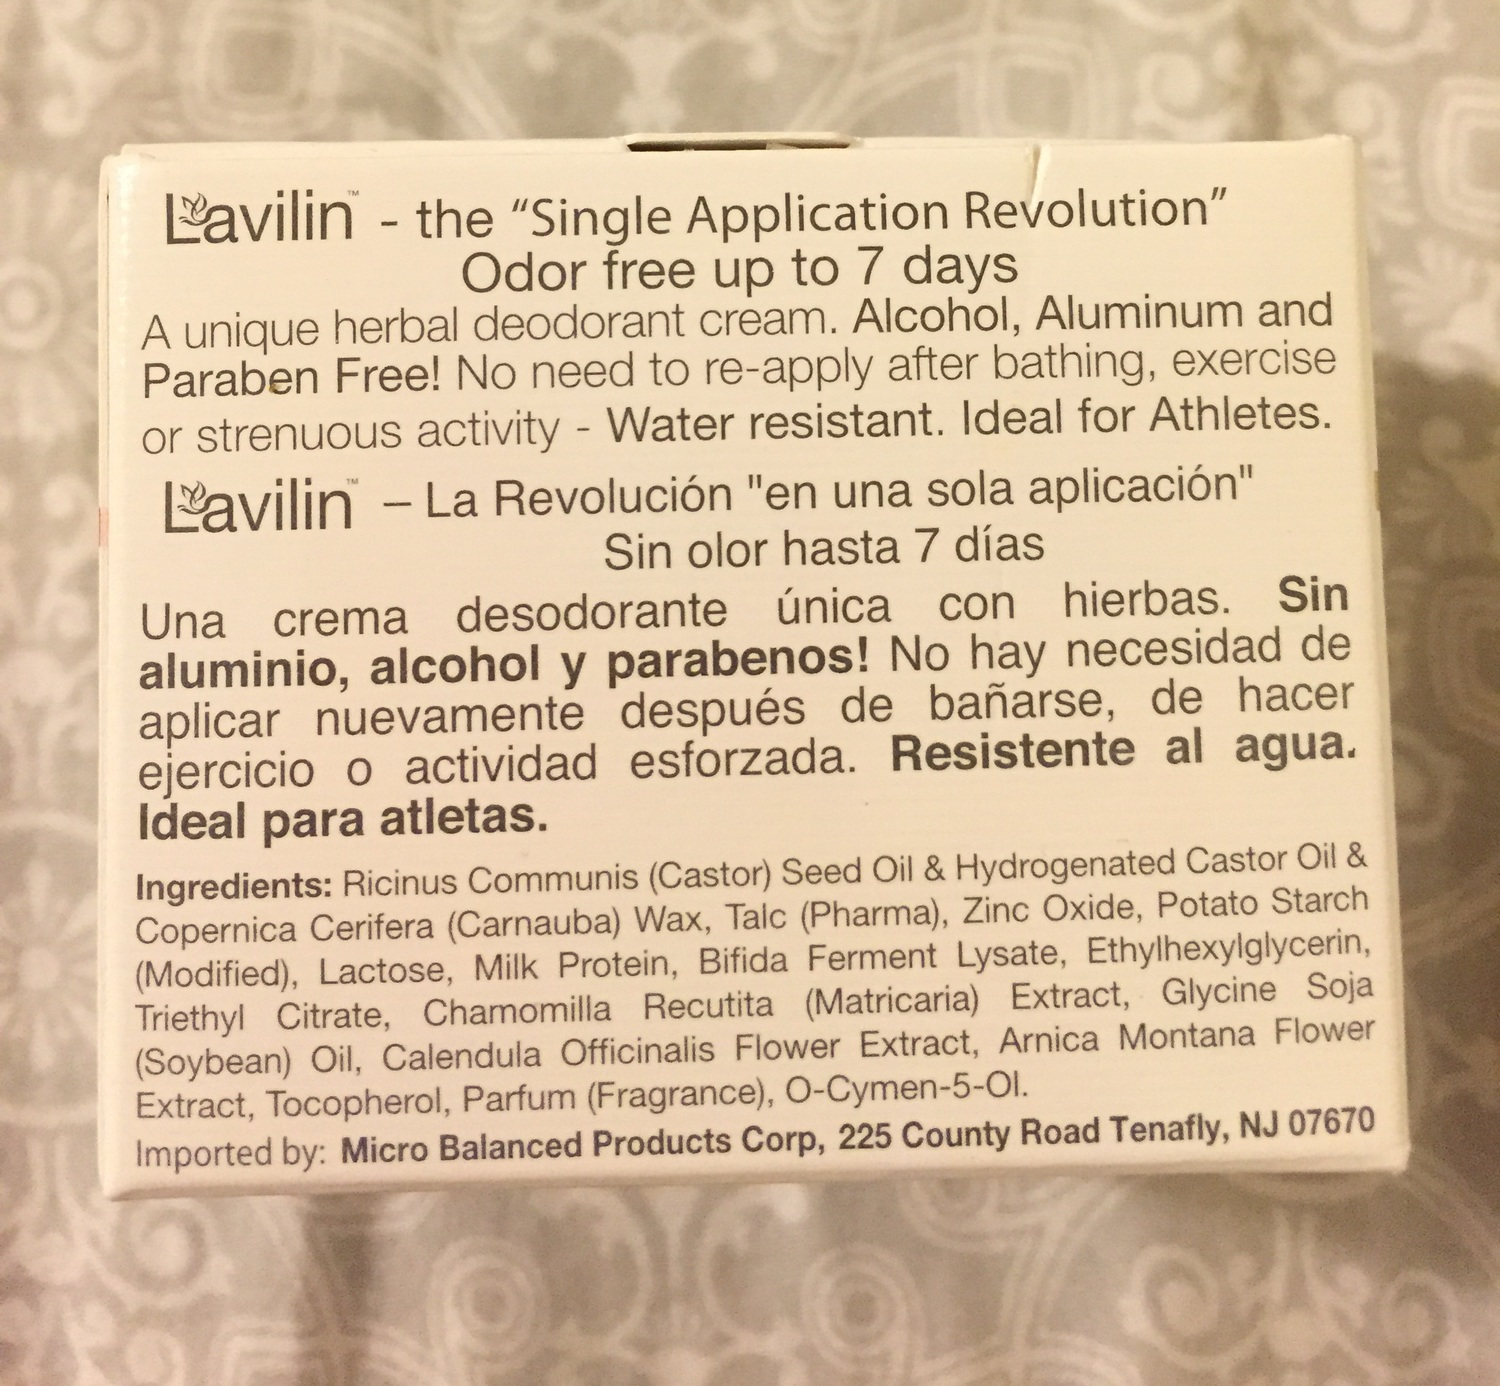 Lavilin is a completely natural deodorant cream